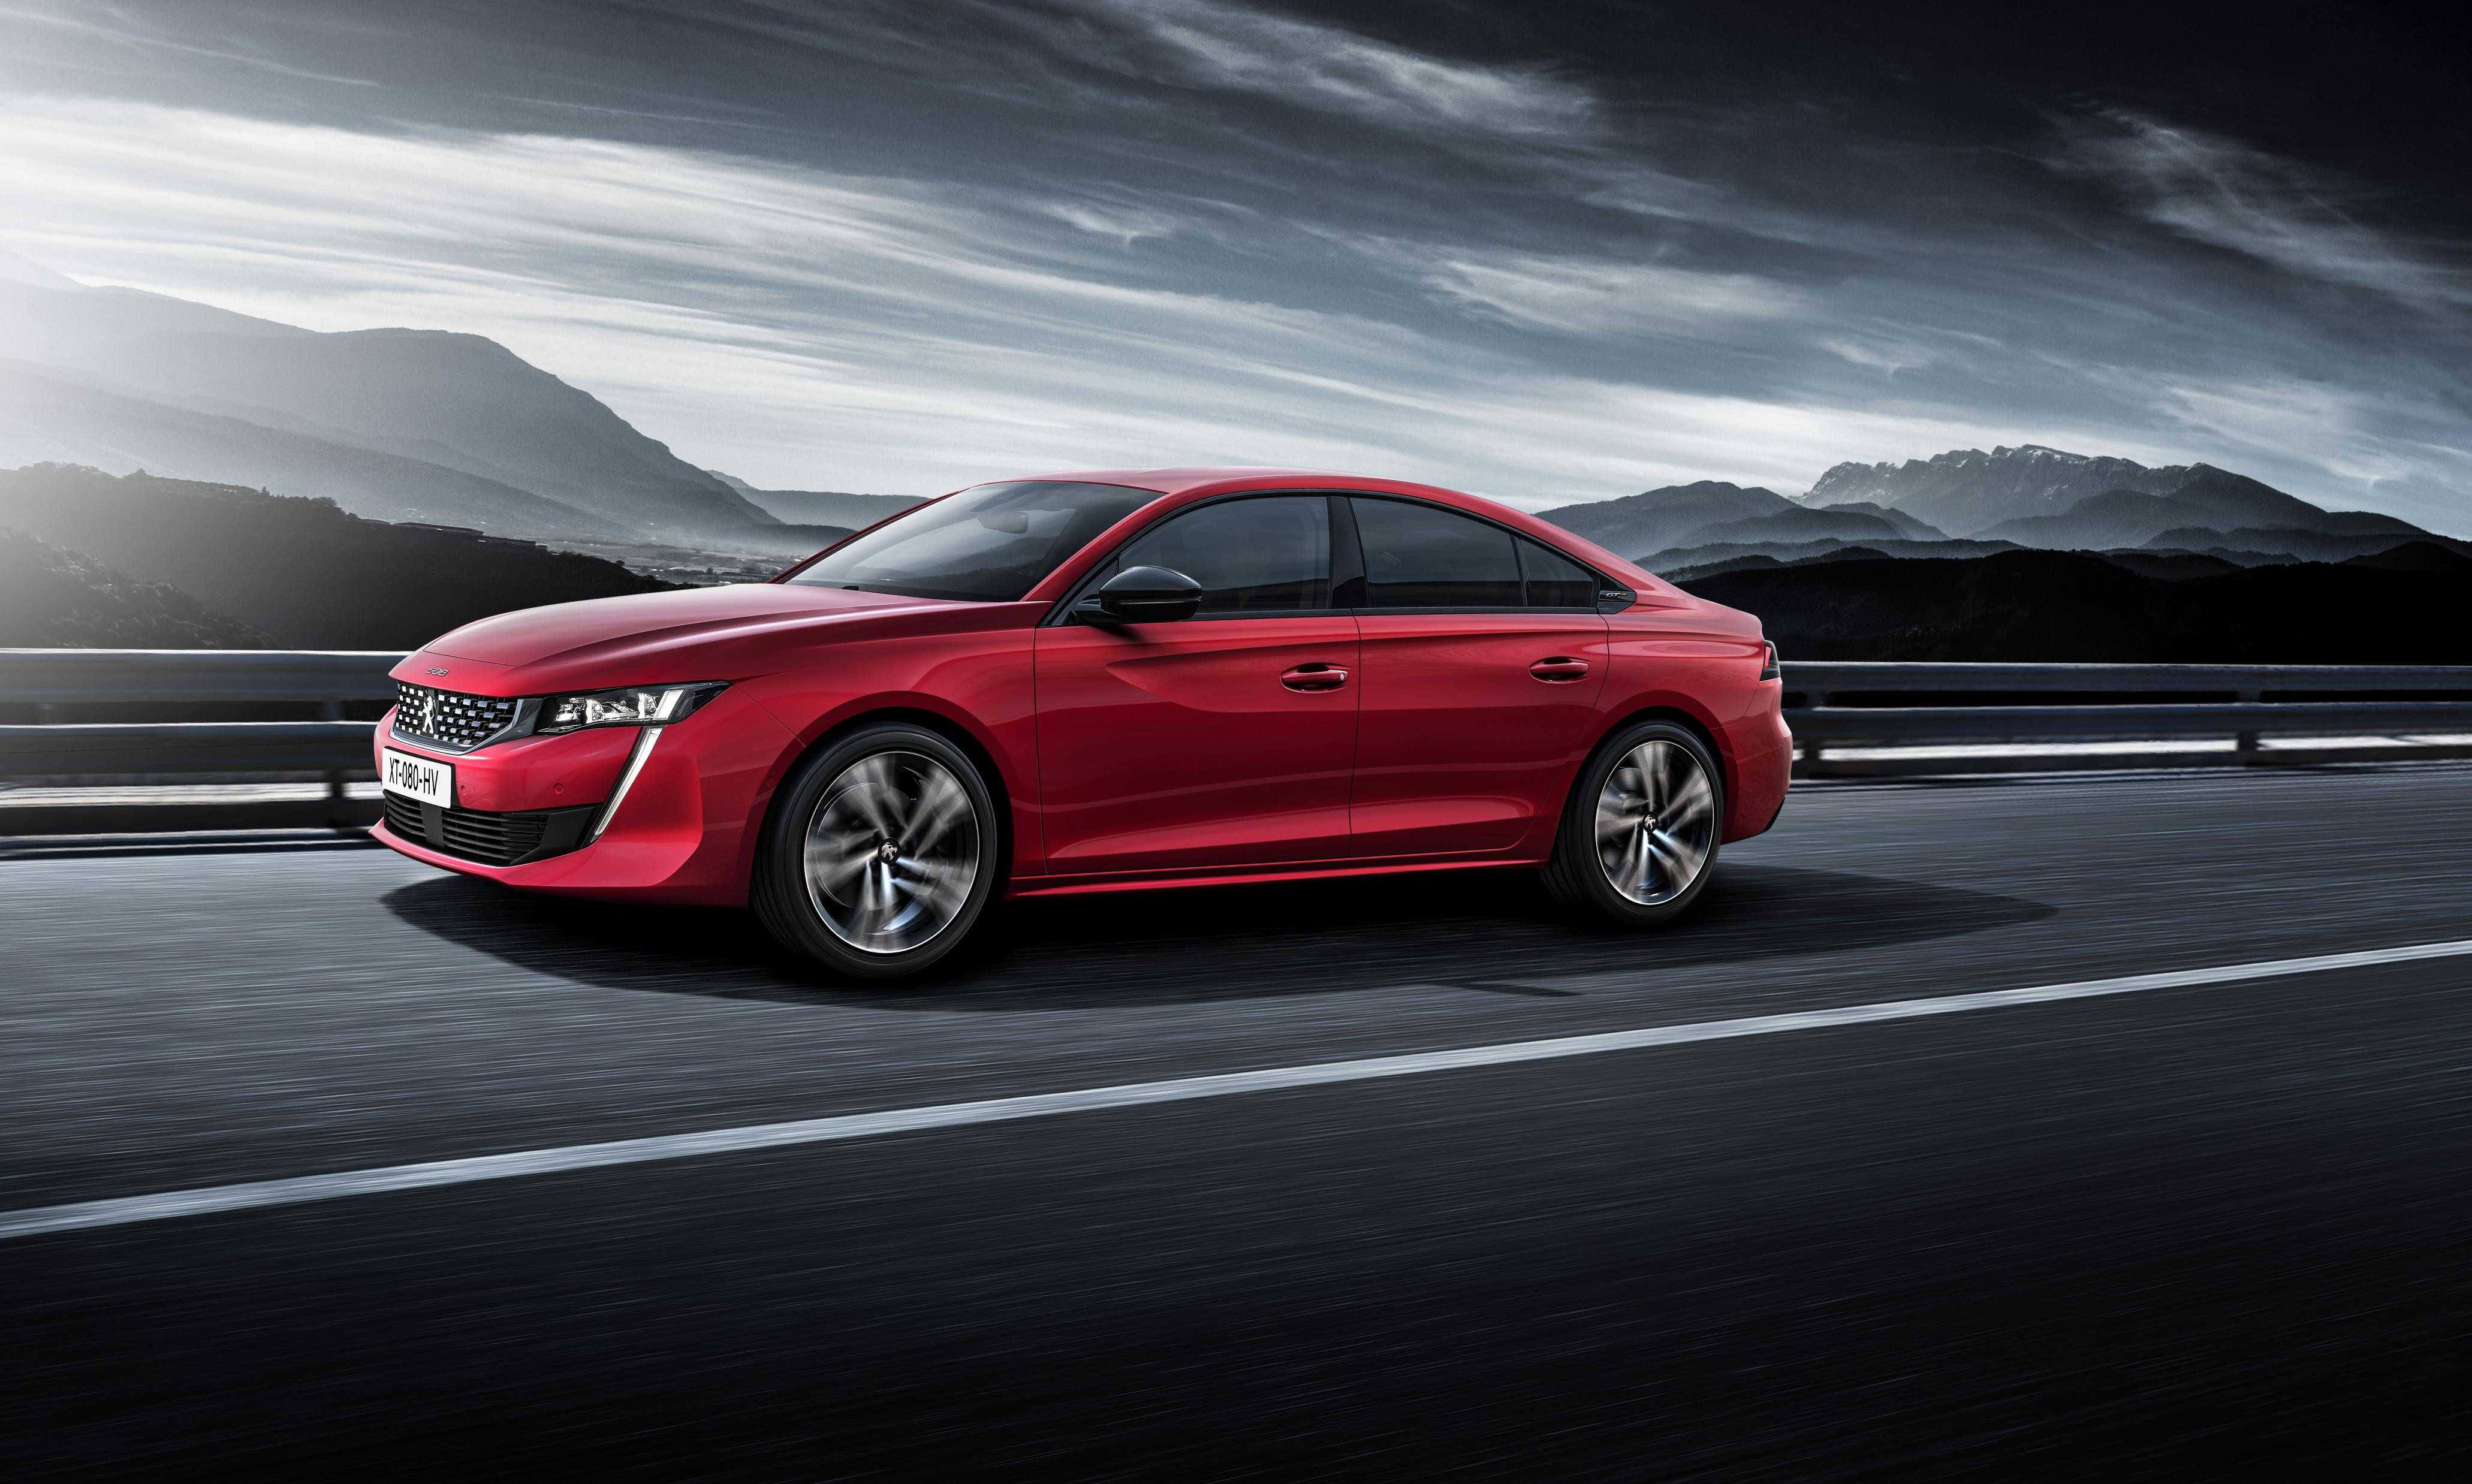 Red Peugeot 508 with dramatic backdrop